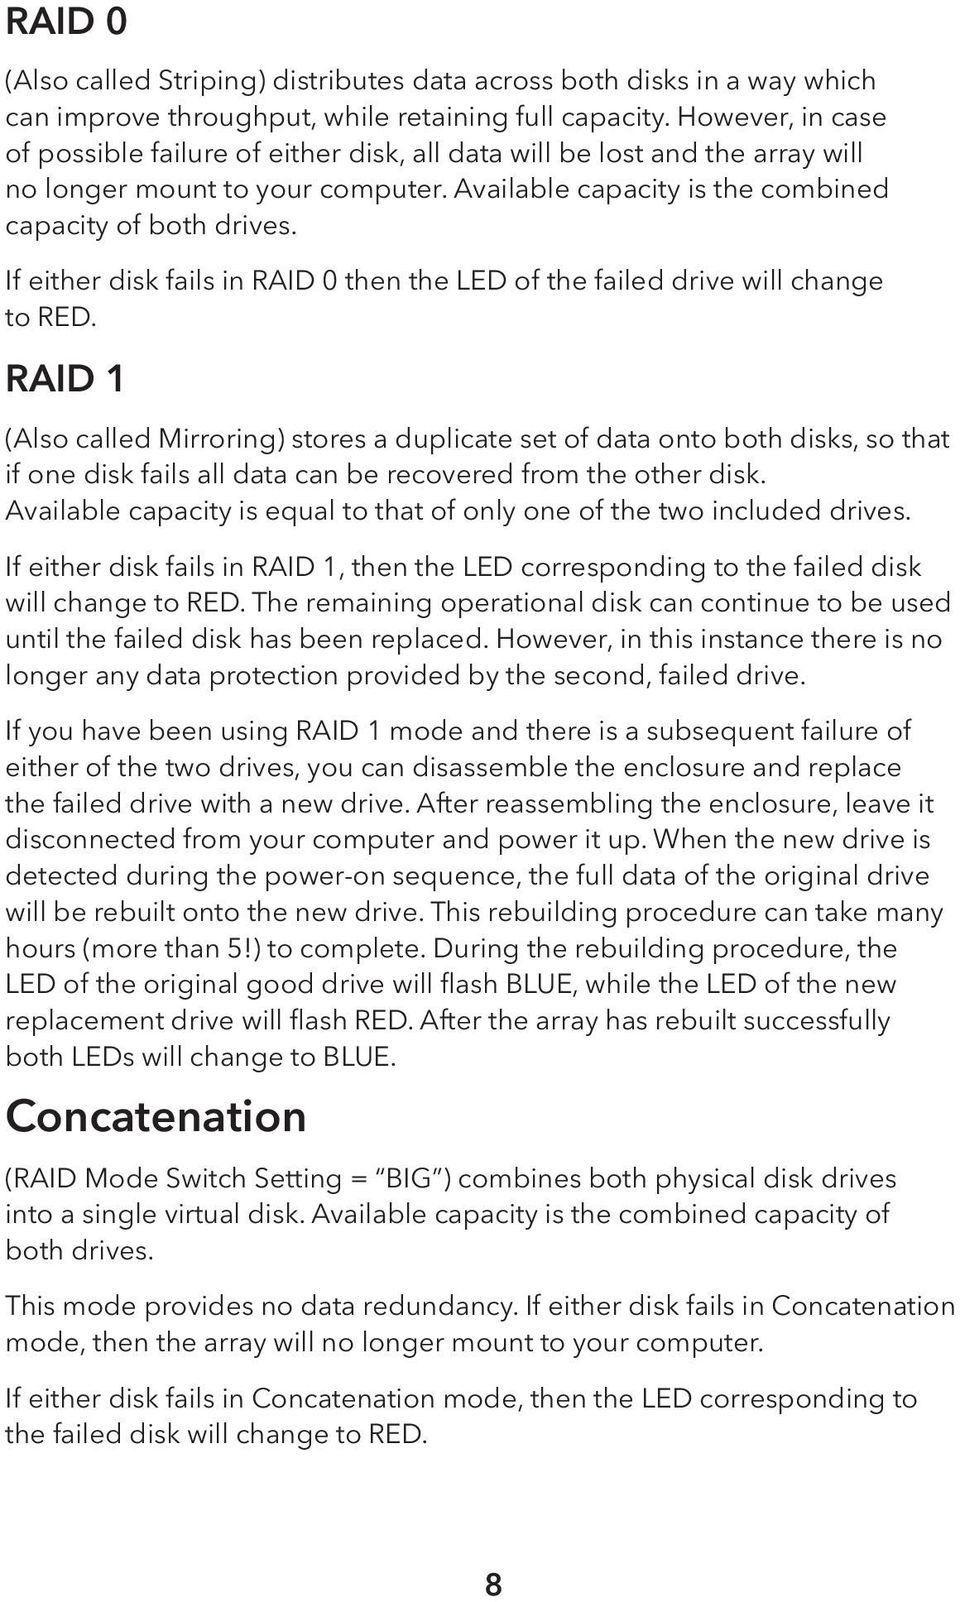 If either disk fails in RAID 0 then the LED of the failed drive will change to RED.